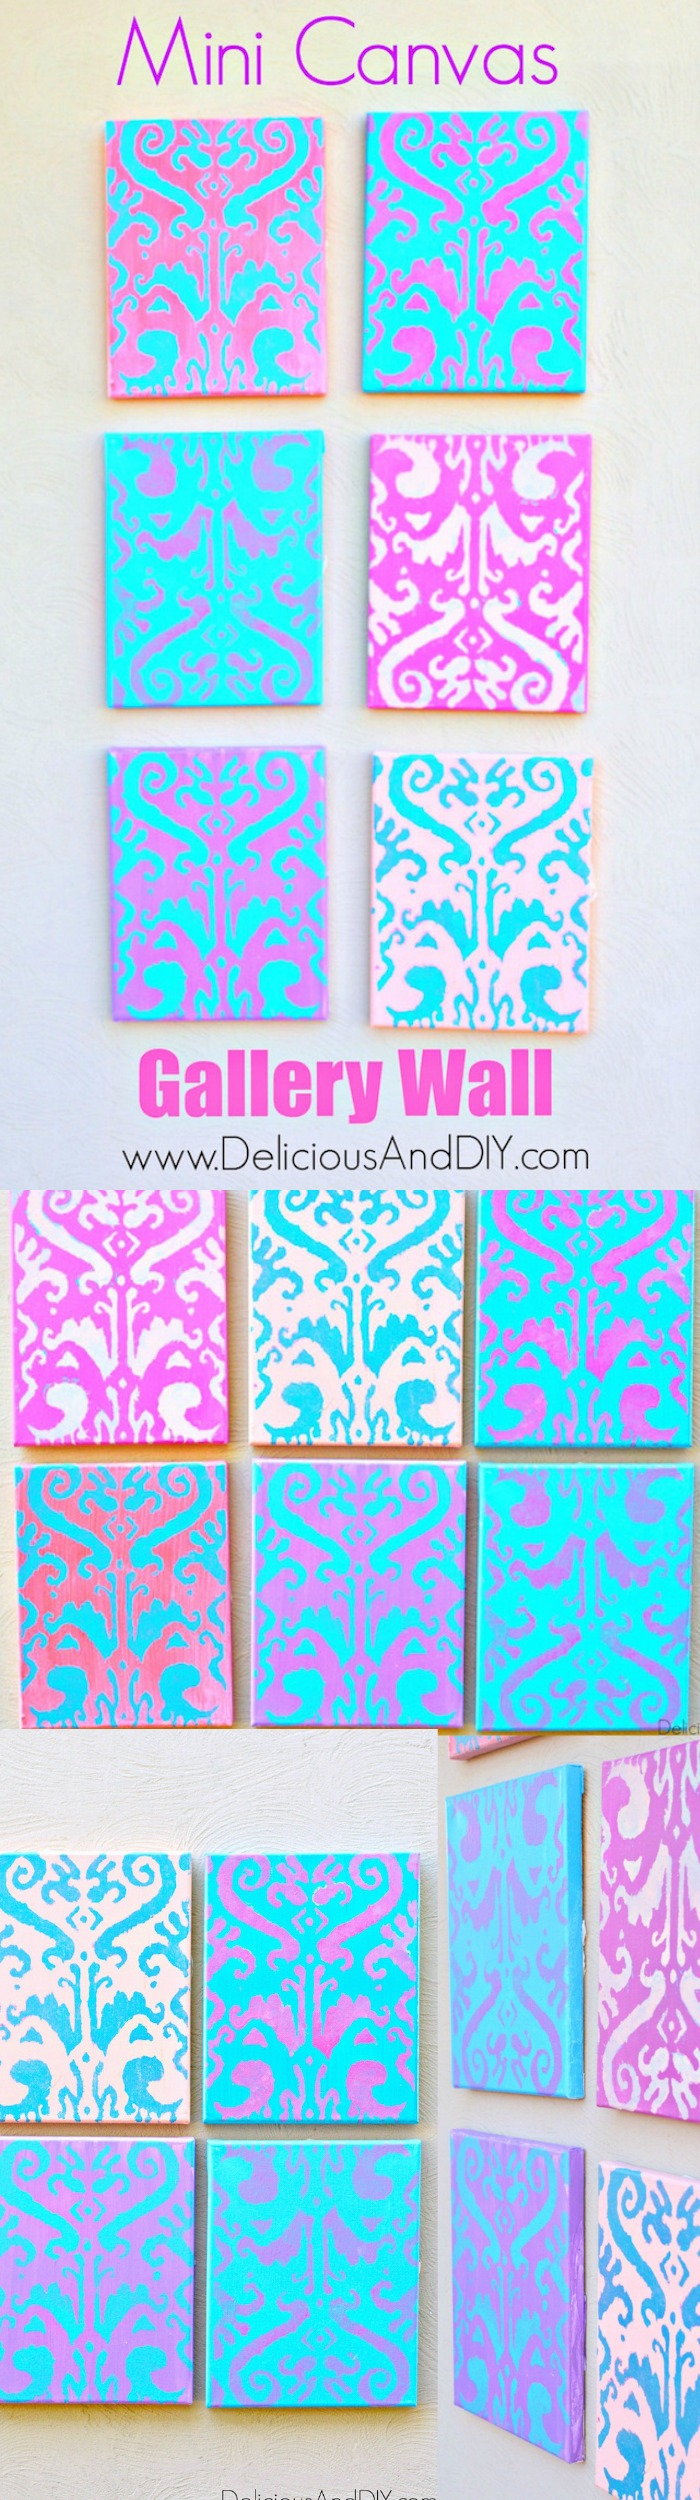 Create a fun Mini Canvas Gallery Wall all by using the same stencil but using different paint colors on each one of them| Home Decor| Galley Wall Art Ideas| Painted Wall Art| DIY Crafts| Ikat Wall Art| Ikat Stenciled Wall Art| Mini Canvas Wall Art Ideas